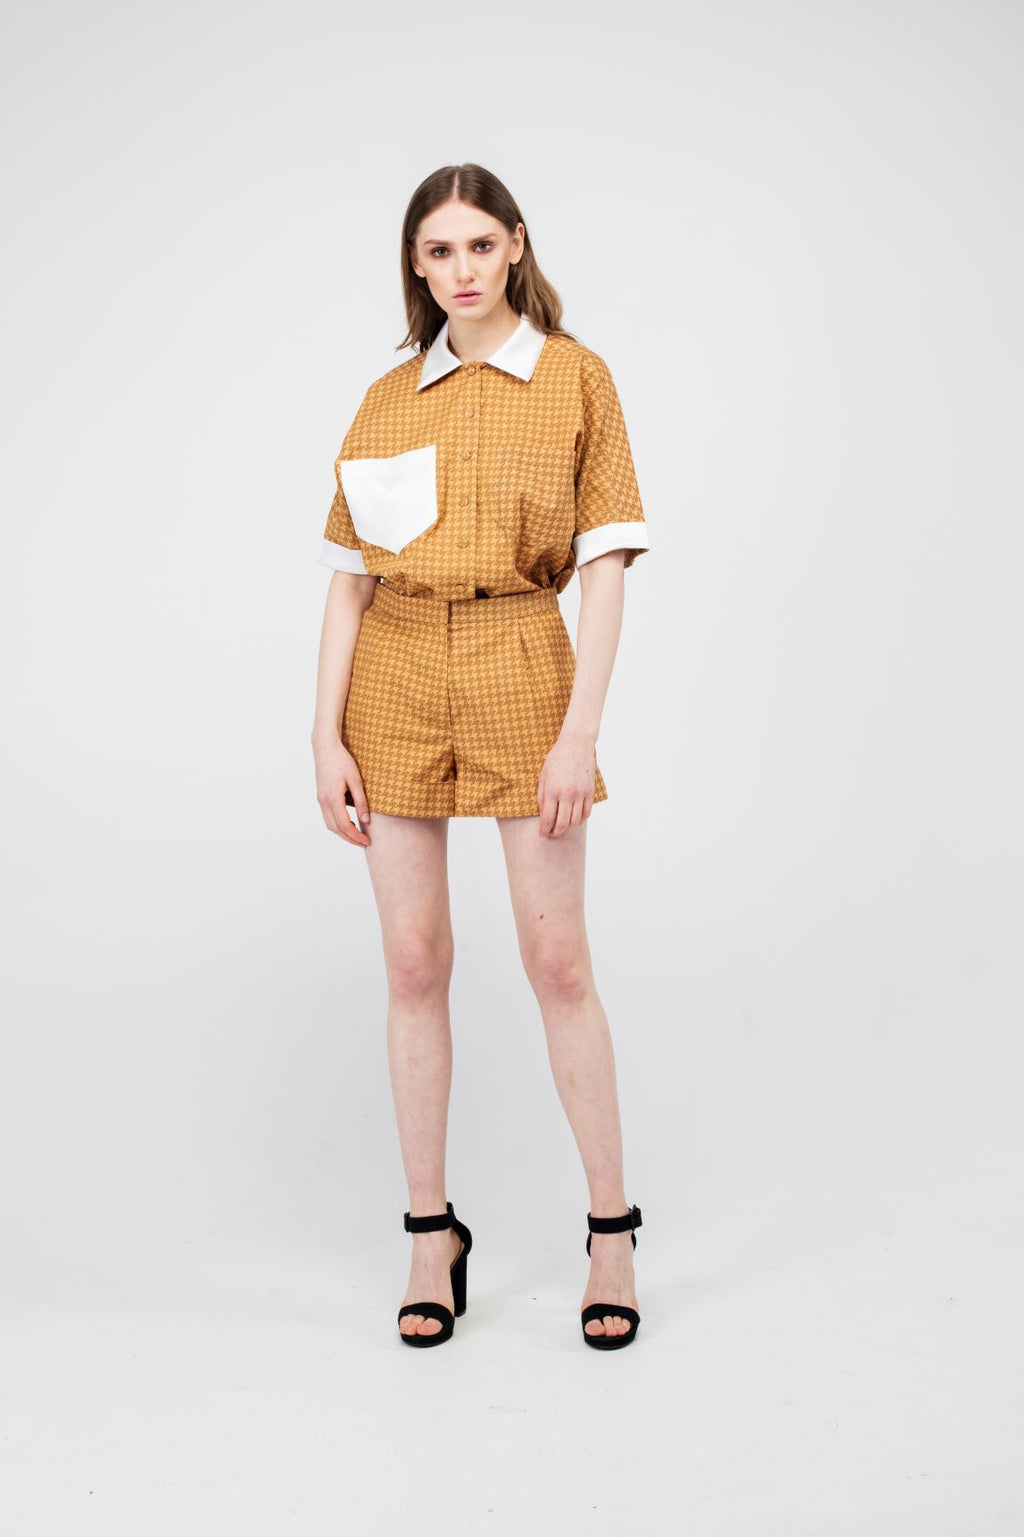 Stylish Goldenrod Girls Suit with White Details - LAZY FRANCIS - Shop in store at 406 Kings Road, Chelsea, London or shop online at www.lazyfrancis.com